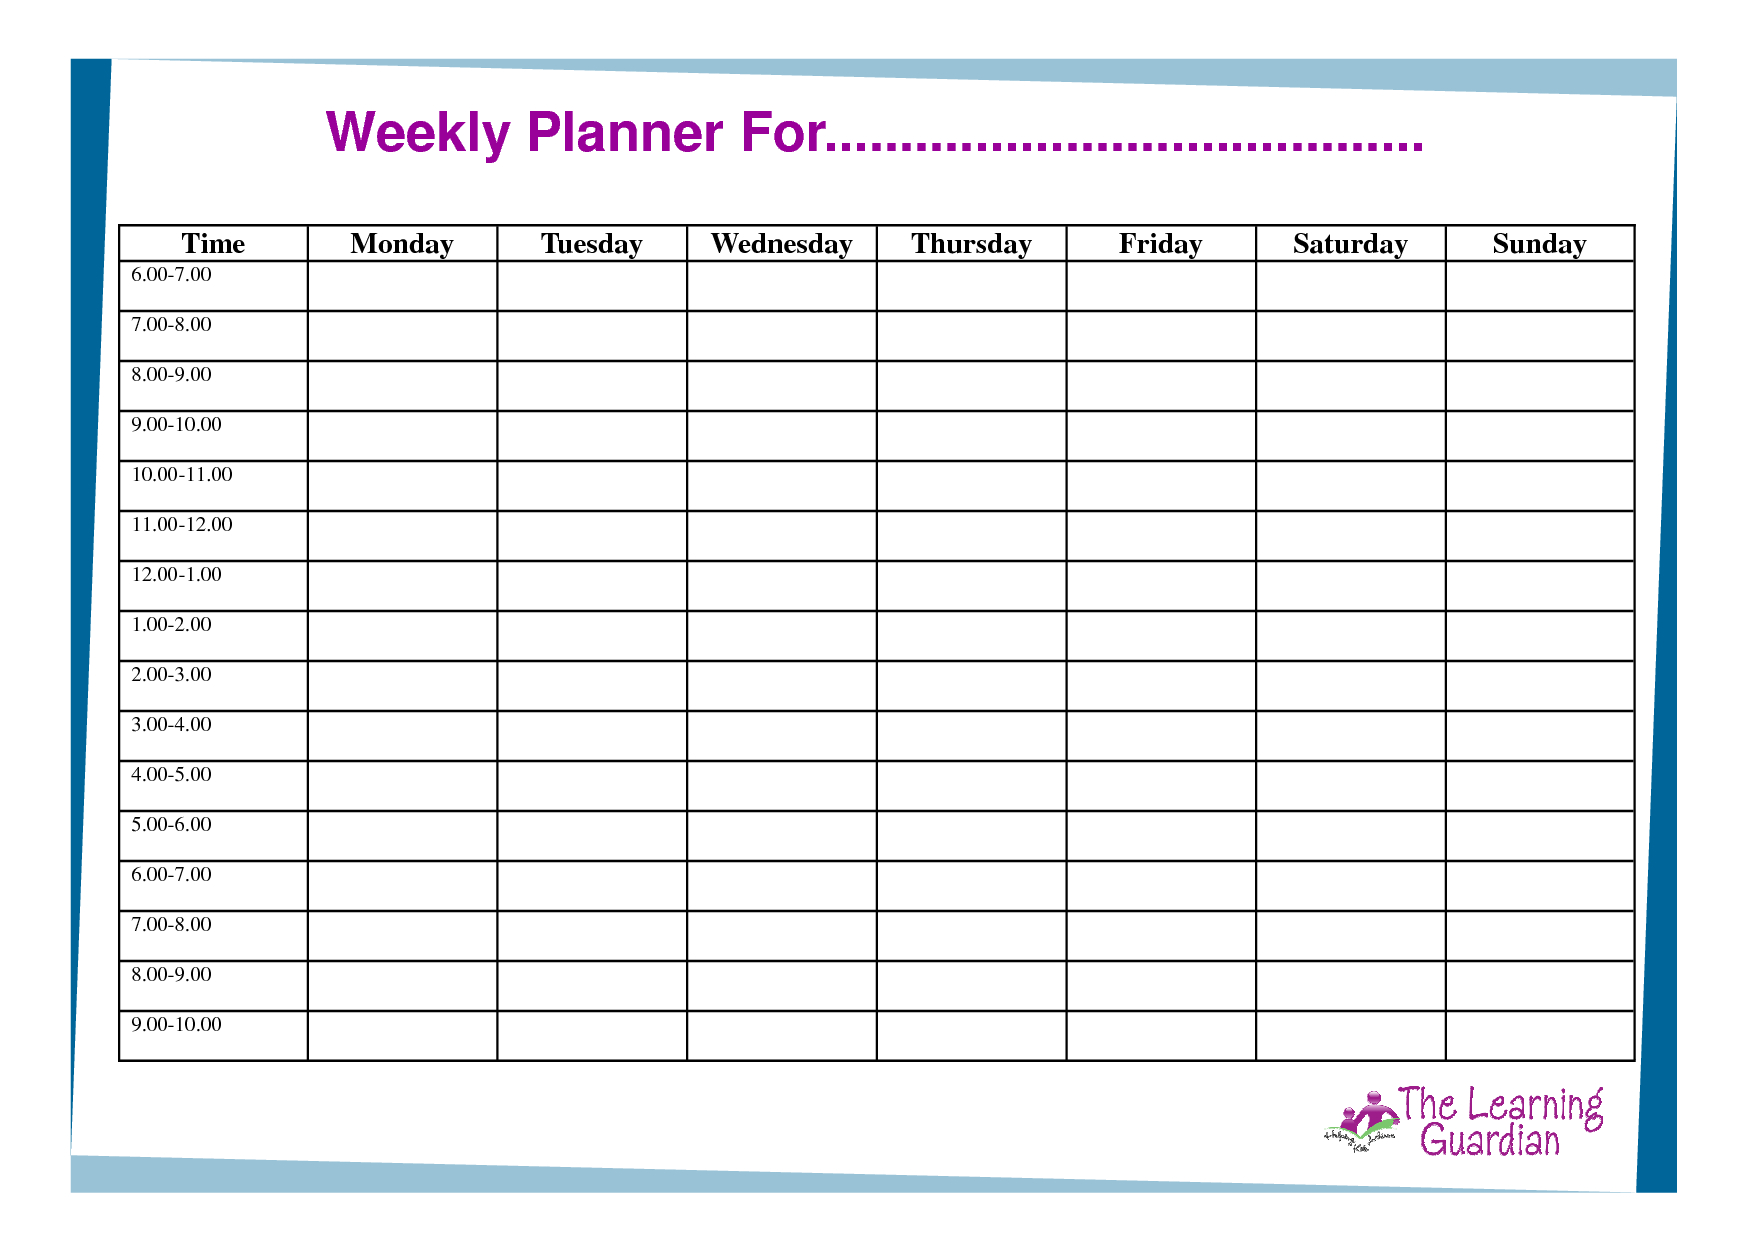 Free Printable Weekly Calendar Templates | Weekly Planner pertaining to Monday Through Sunday Calendar Template